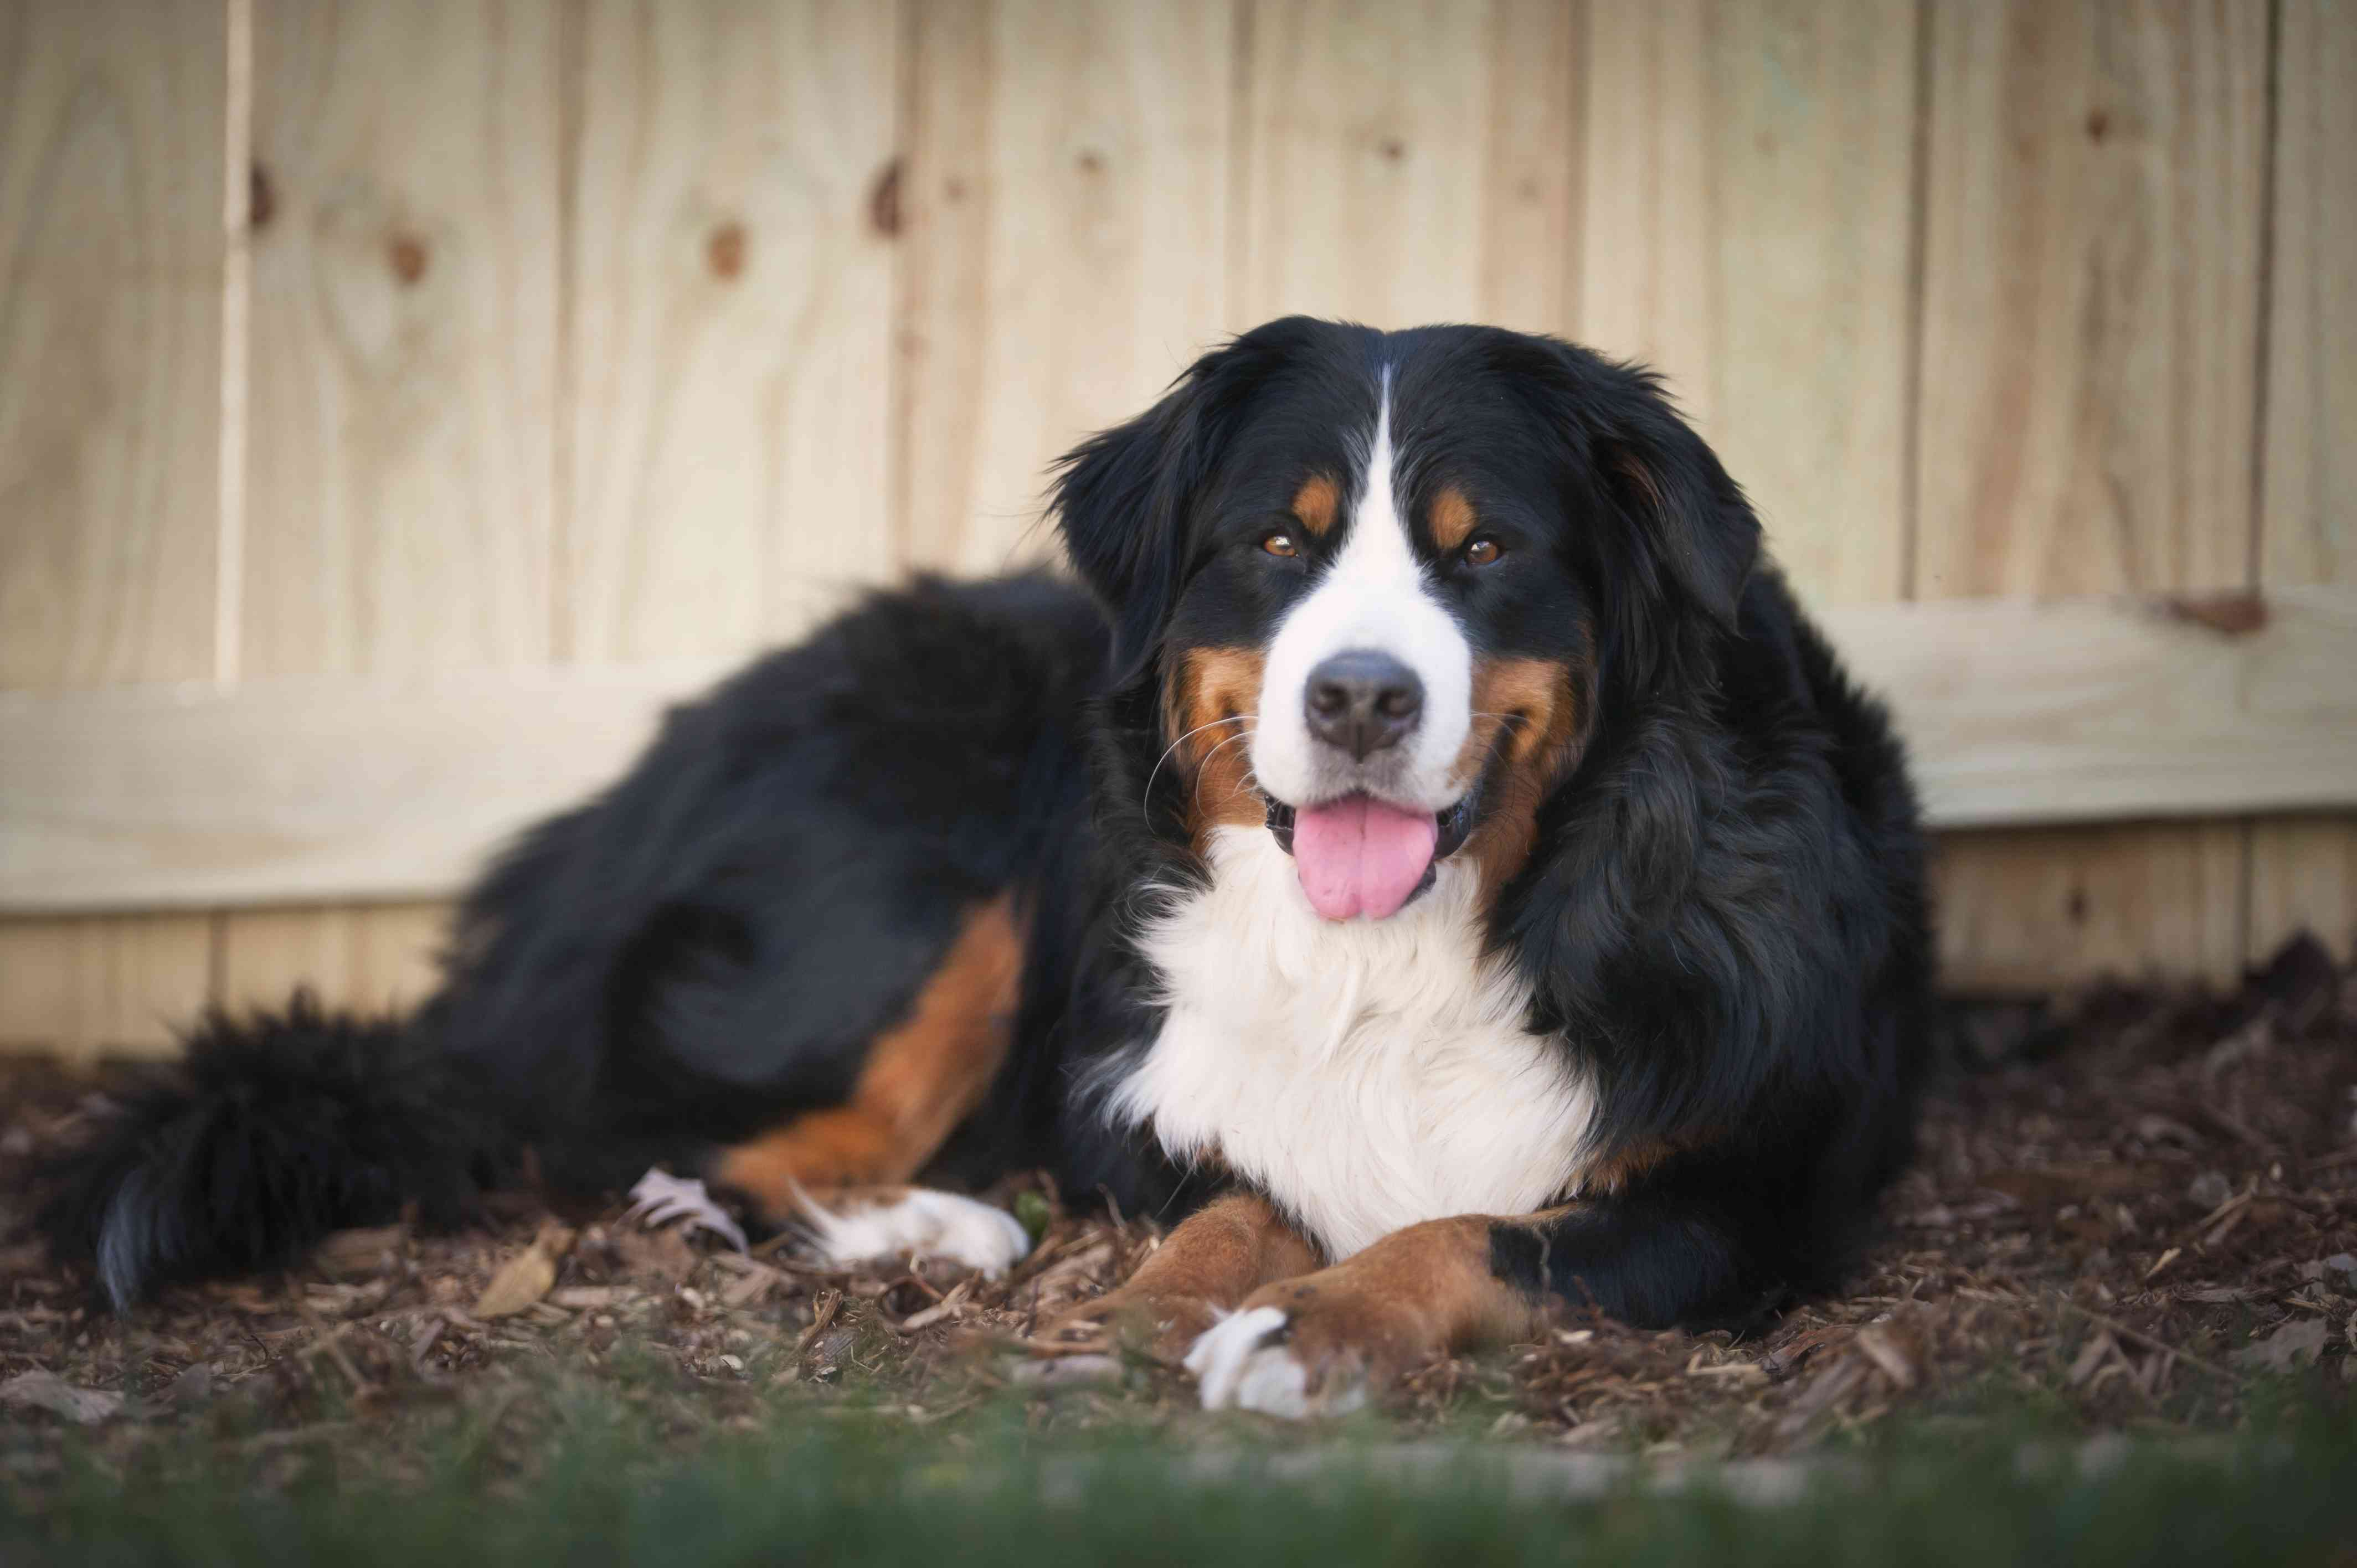 A Bernese Mountain Dog Sits Outside In the Grass and Mulch